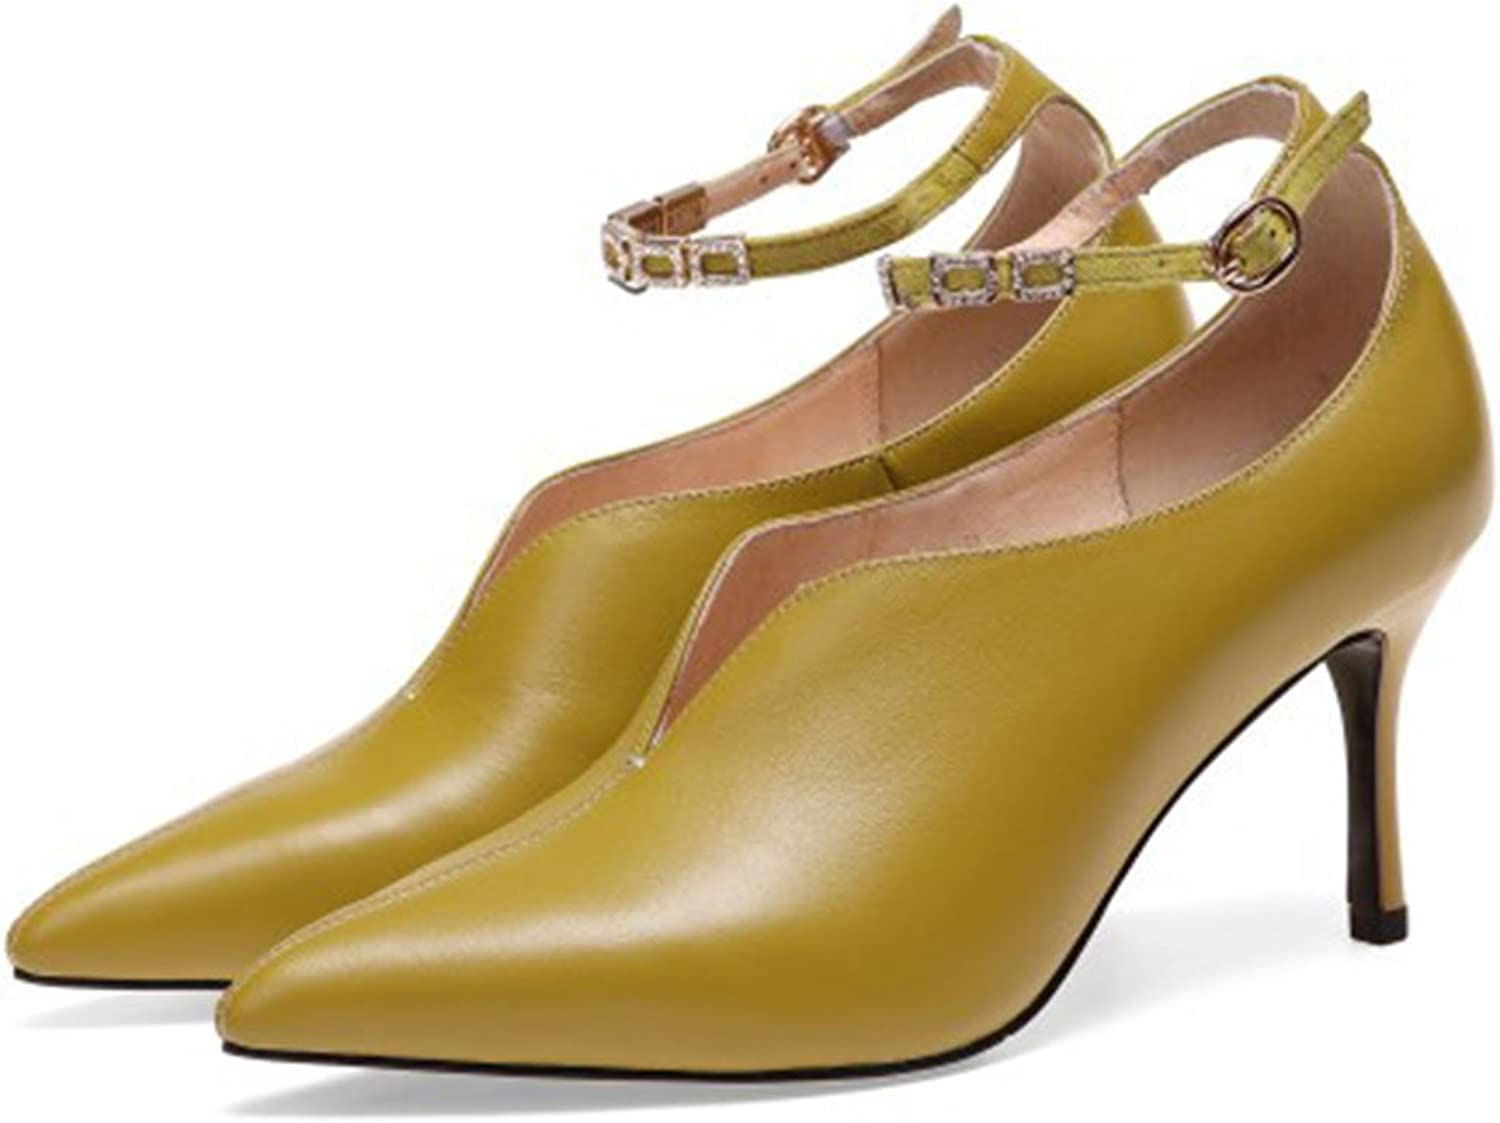 FLYSXP Women's shoes High-Heeled Court shoes Fashion Buckle Stiletto High-Heeled Dance Ball Pointed Stiletto Women's Fashion Single shoes Women's shoes (color   Mustard Yellow, Size   39 EU)